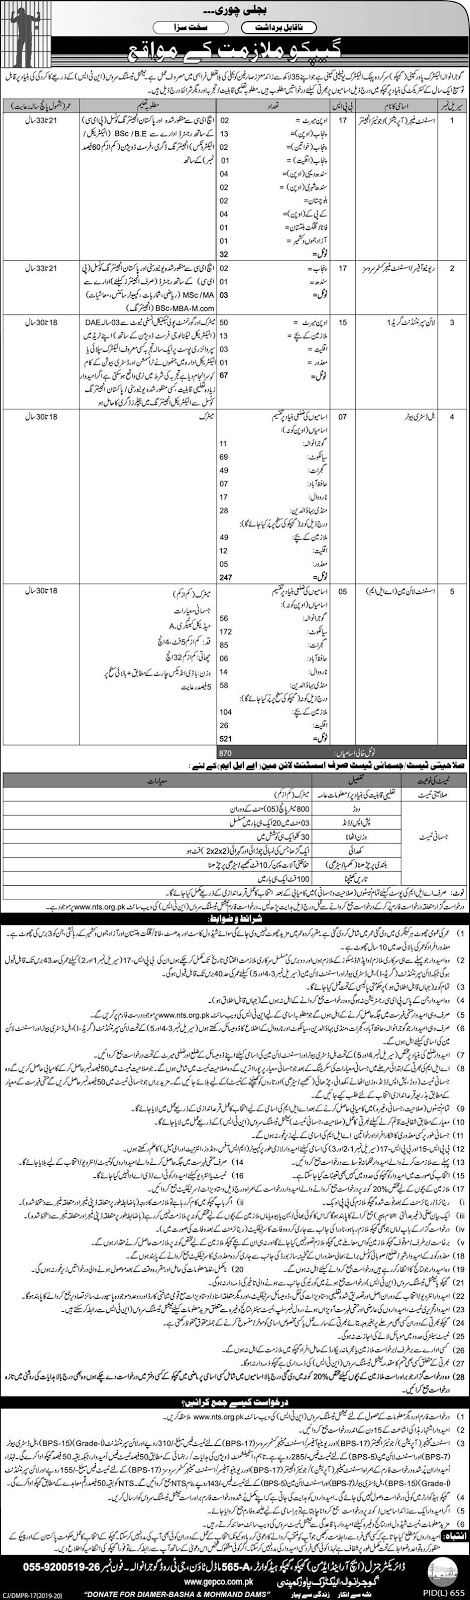 WAPDA GEPCO Jobs 2019 Gujranwala Electric Power Company Career Opportunities